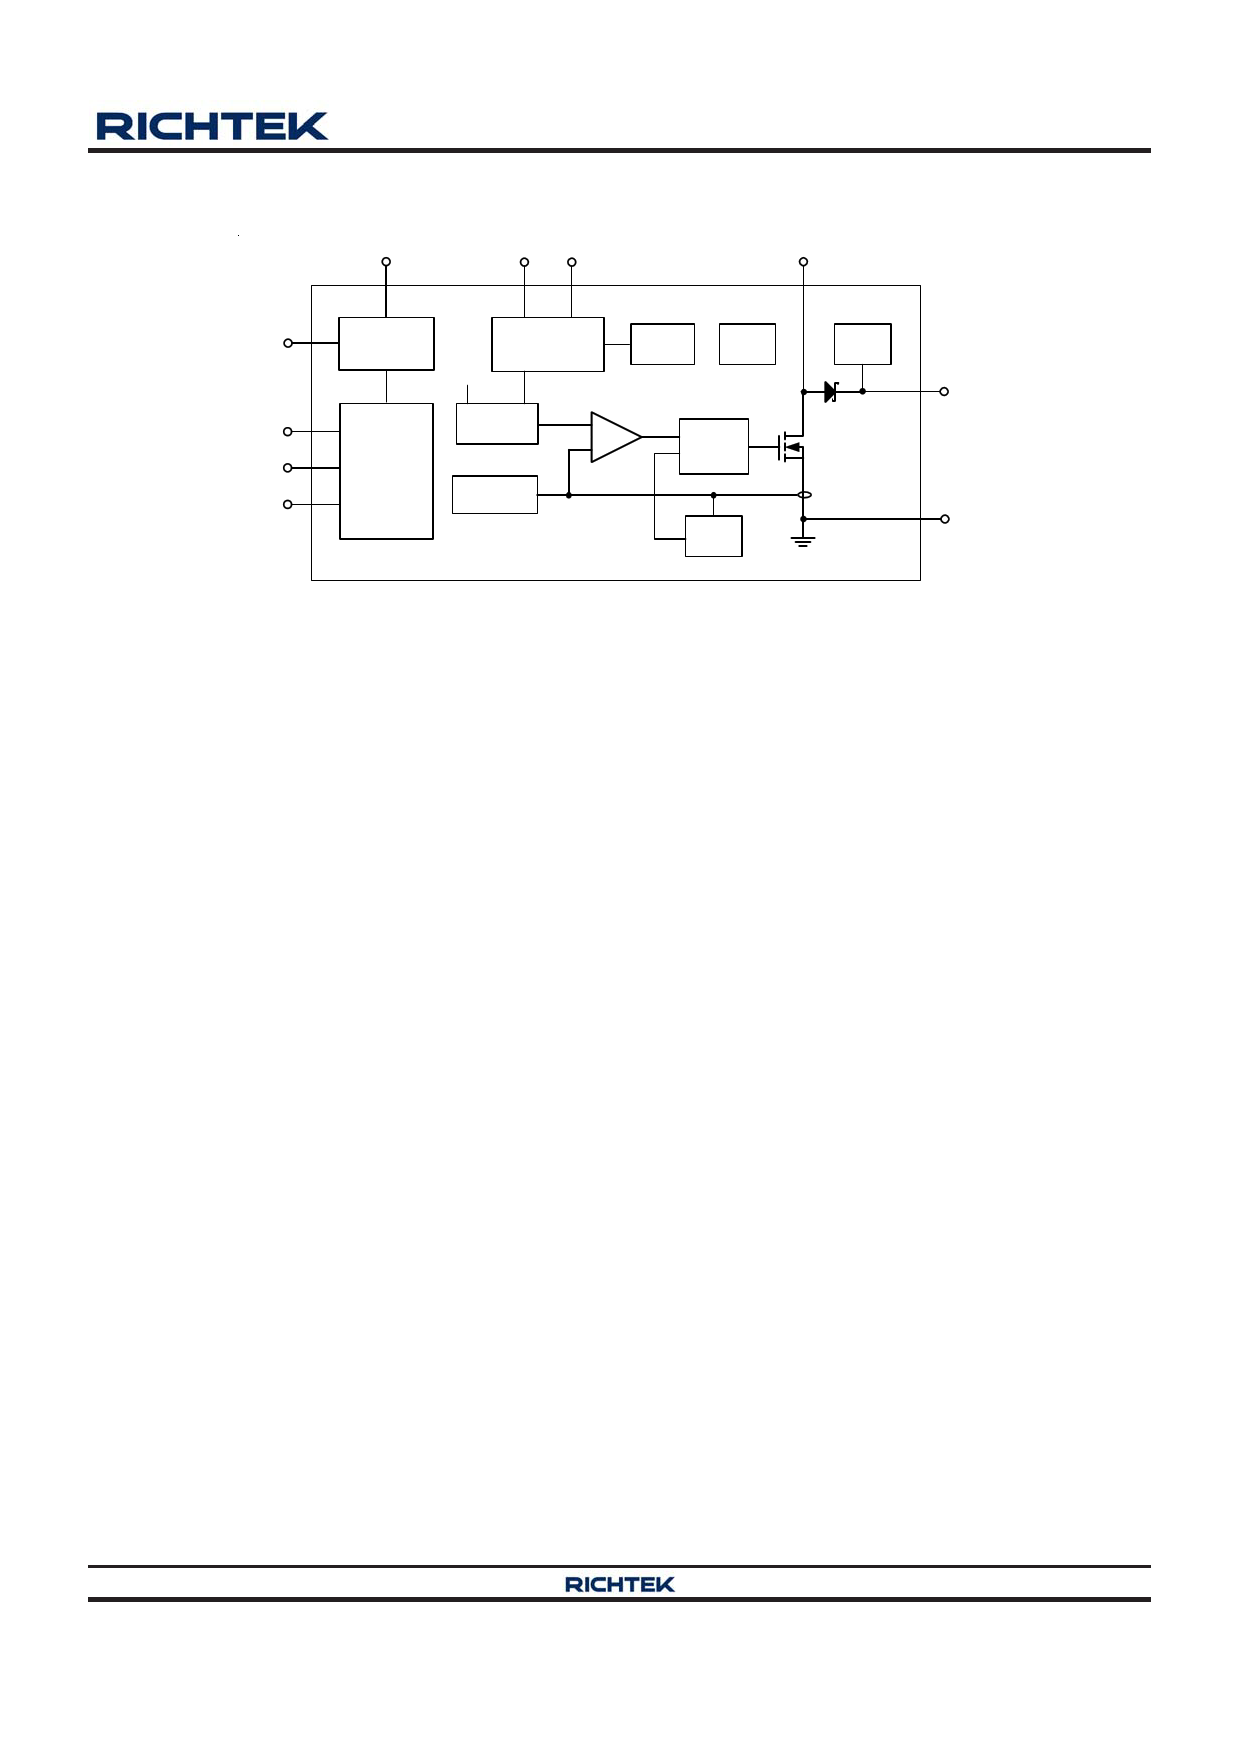 4 20ma Circuit Diagram Wiring And Fuse Box Loop Powered Indicator Together With Rtd Transmitter Moreover Temperature Current Source Using